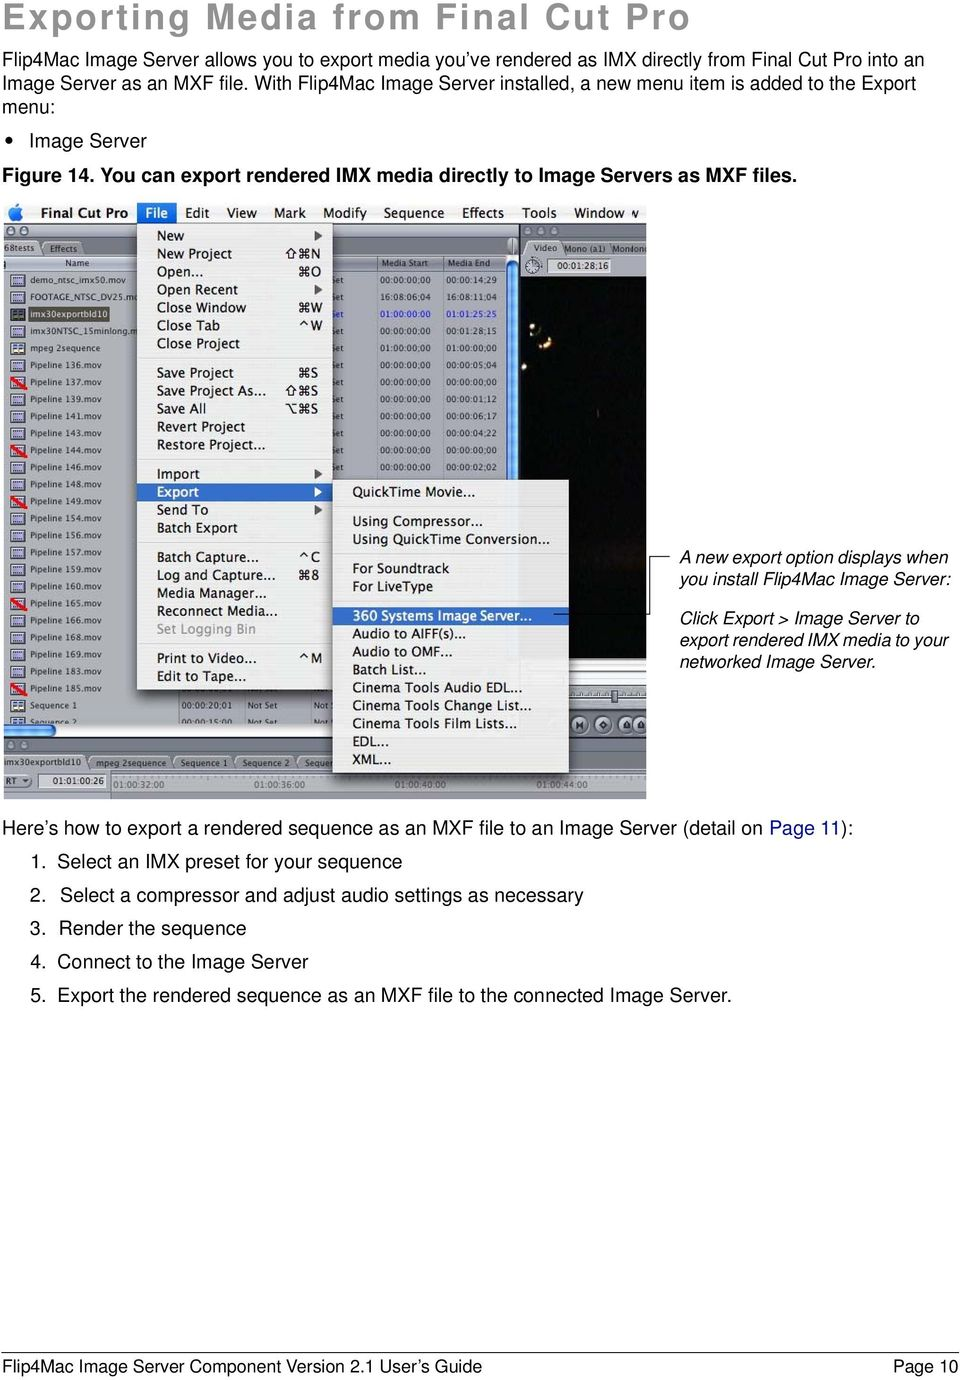 A new export option displays when you install Flip4Mac Image Server: Click Export > Image Server to export rendered IMX media to your networked Image Server.